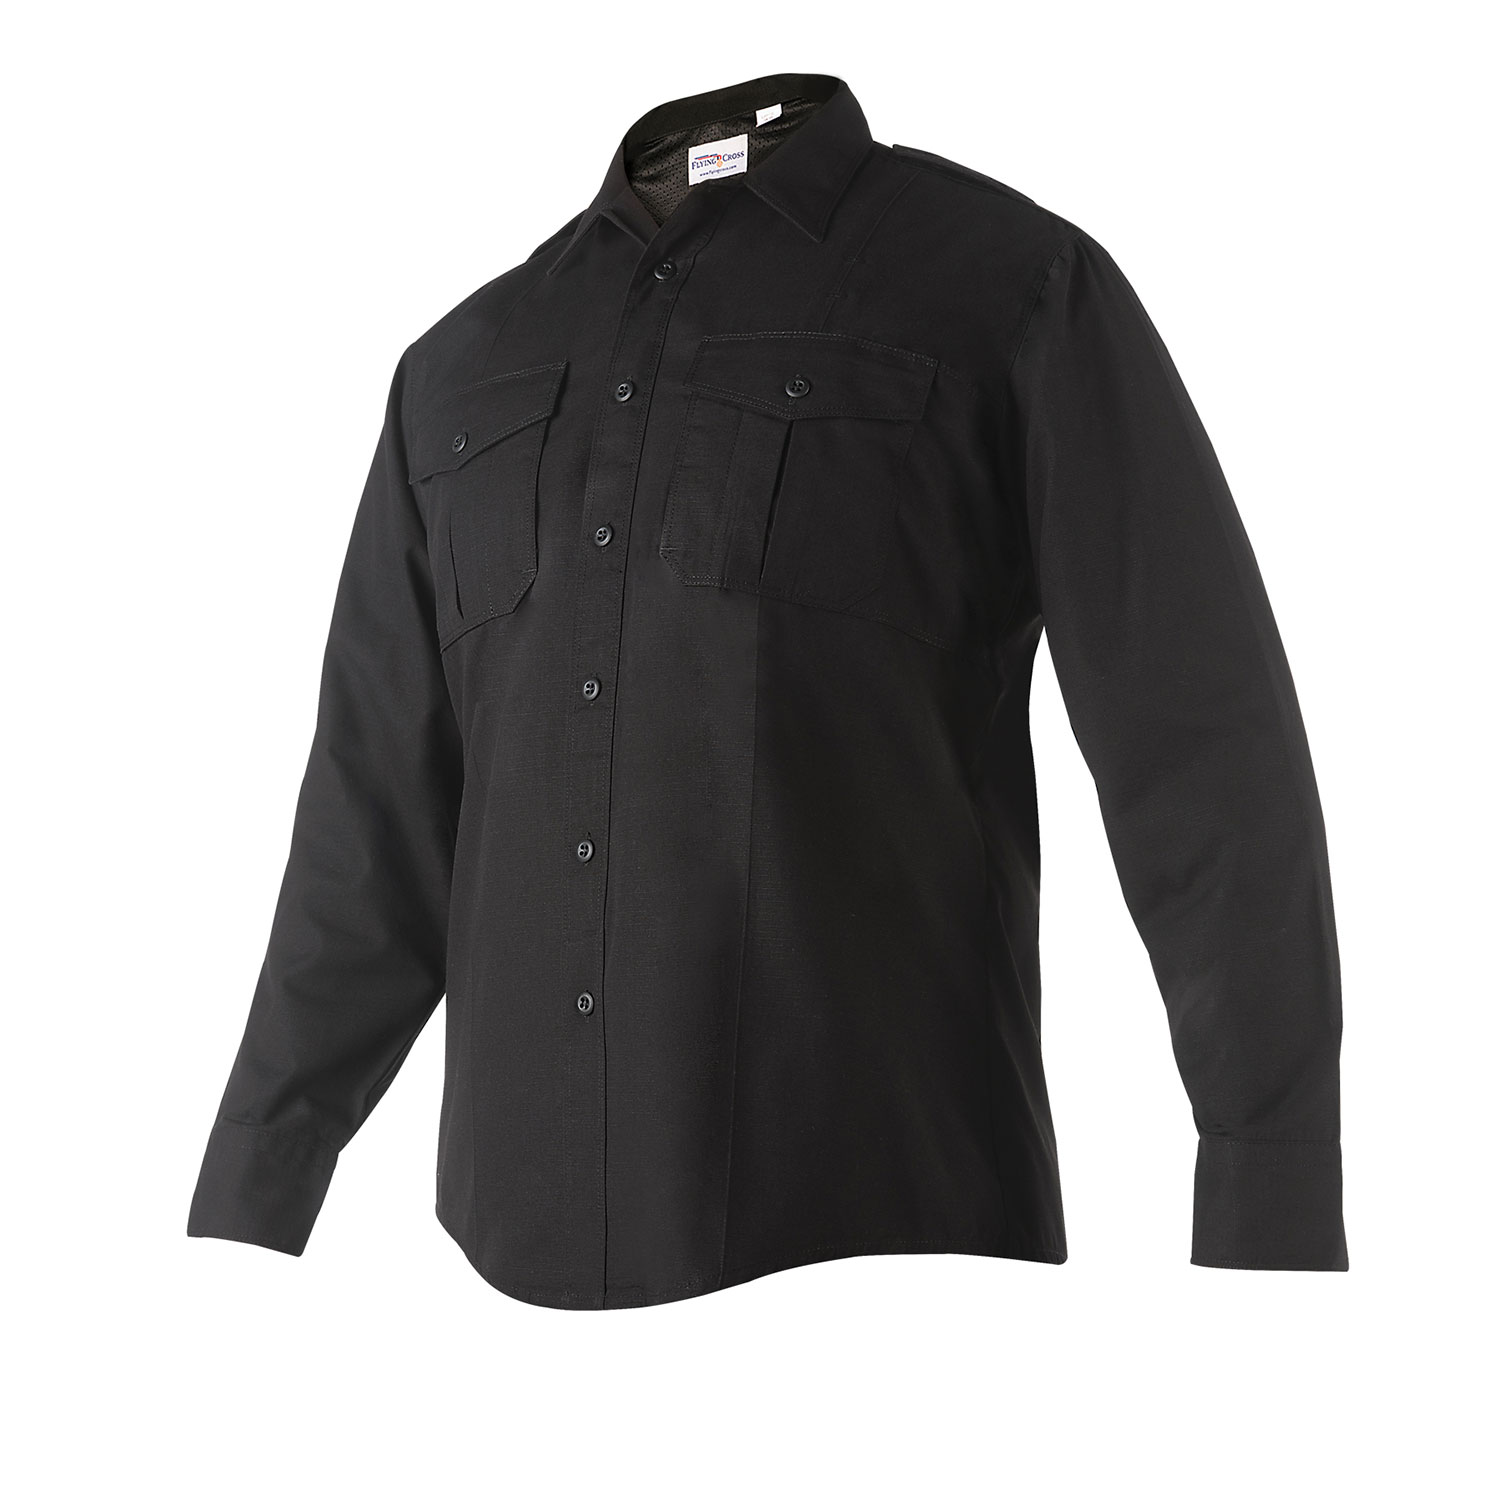 Flying Cross Cross Fx Class B Style Long Sleeve Shirt by Fly